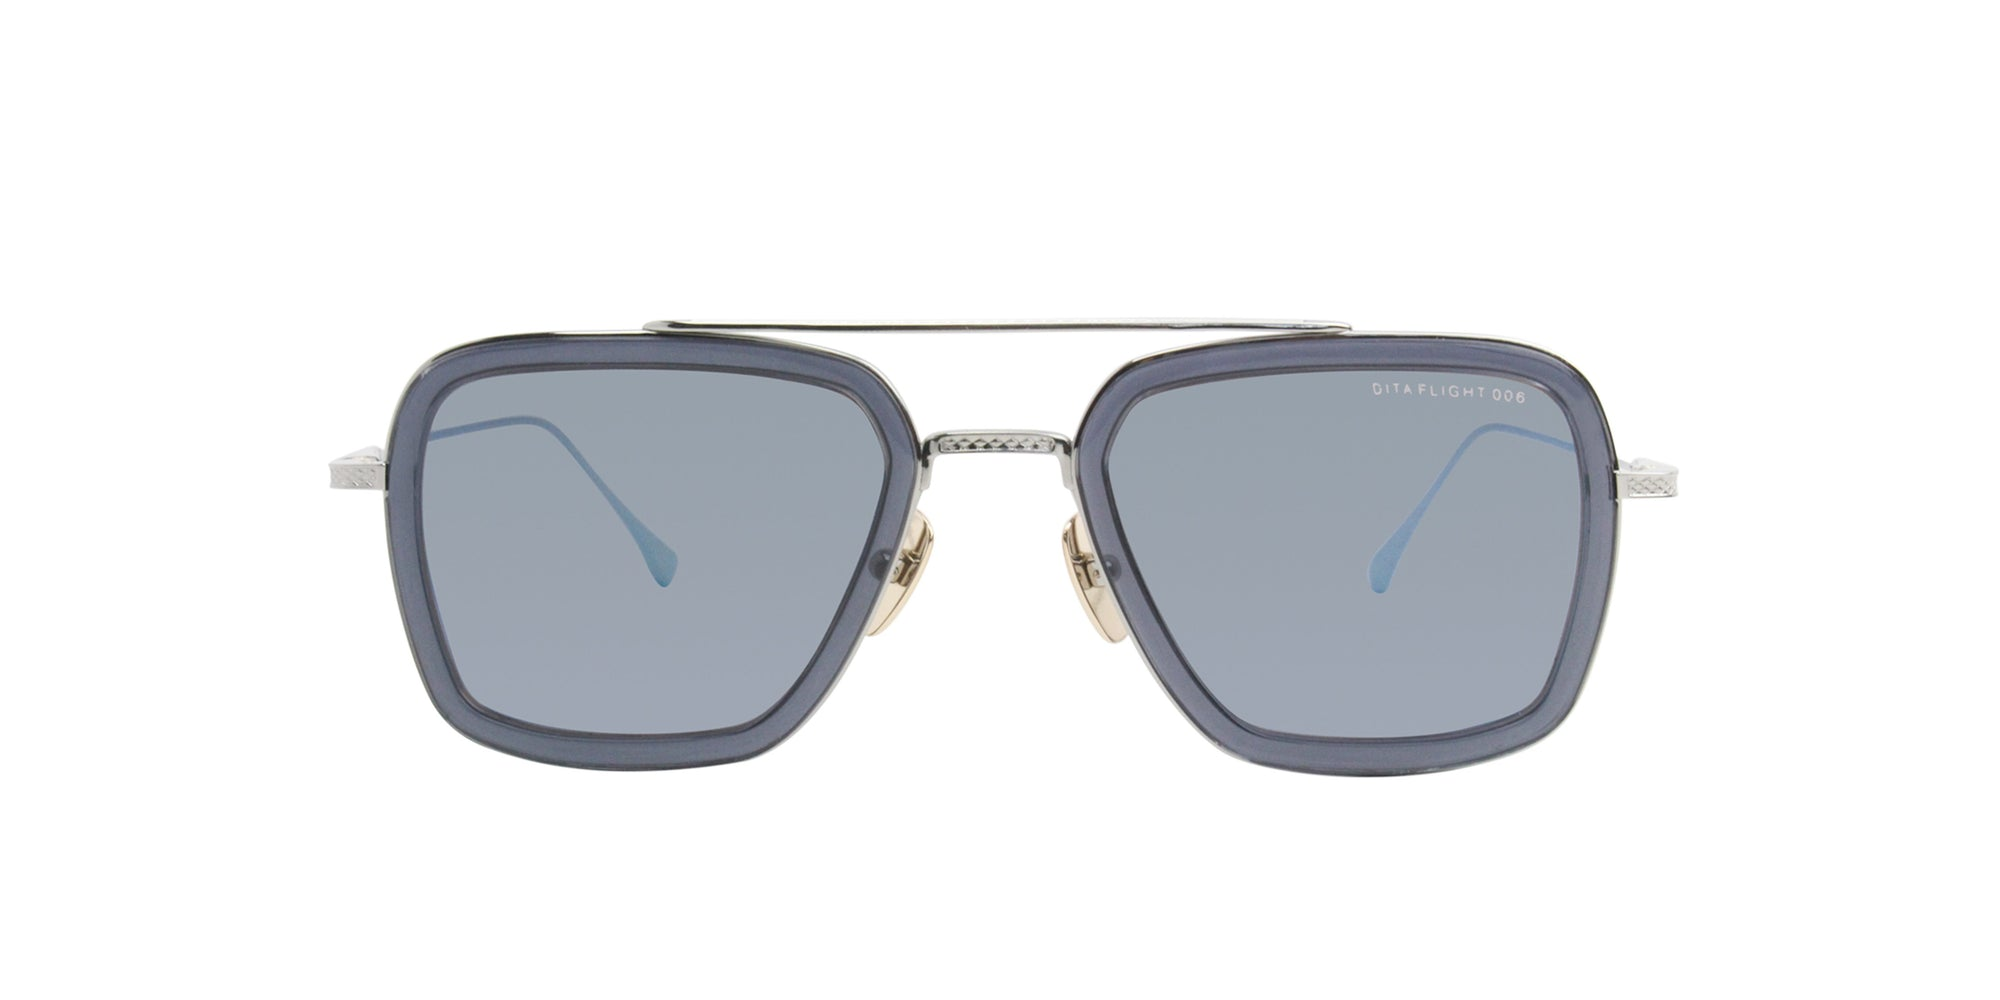 Dita - Flight 006 Blue Rectangular Unisex Sunglasses - 52mm-Sunglasses-Designer Eyes